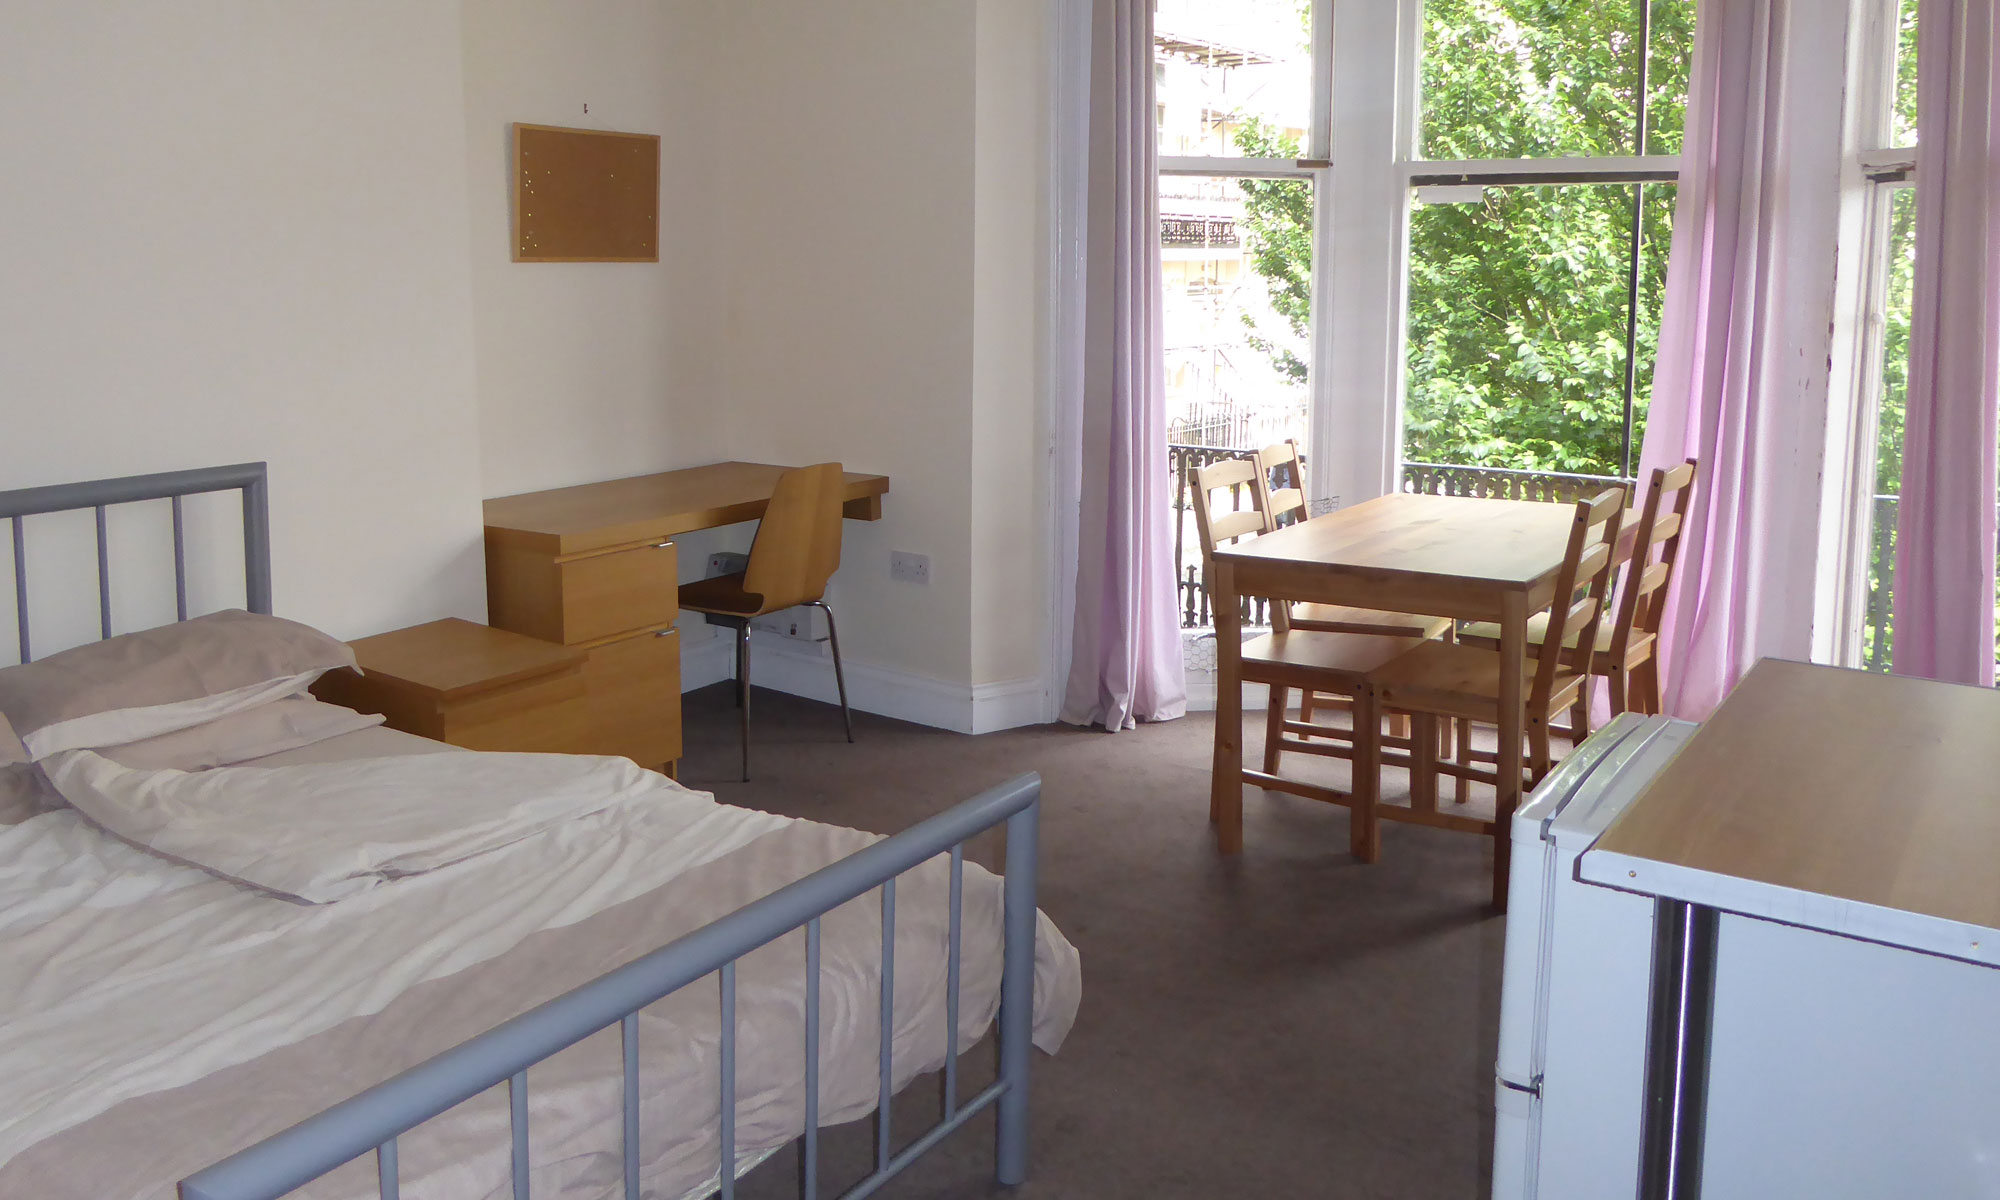 Student accommodation in Bedford Square, Brighton - large private rooms